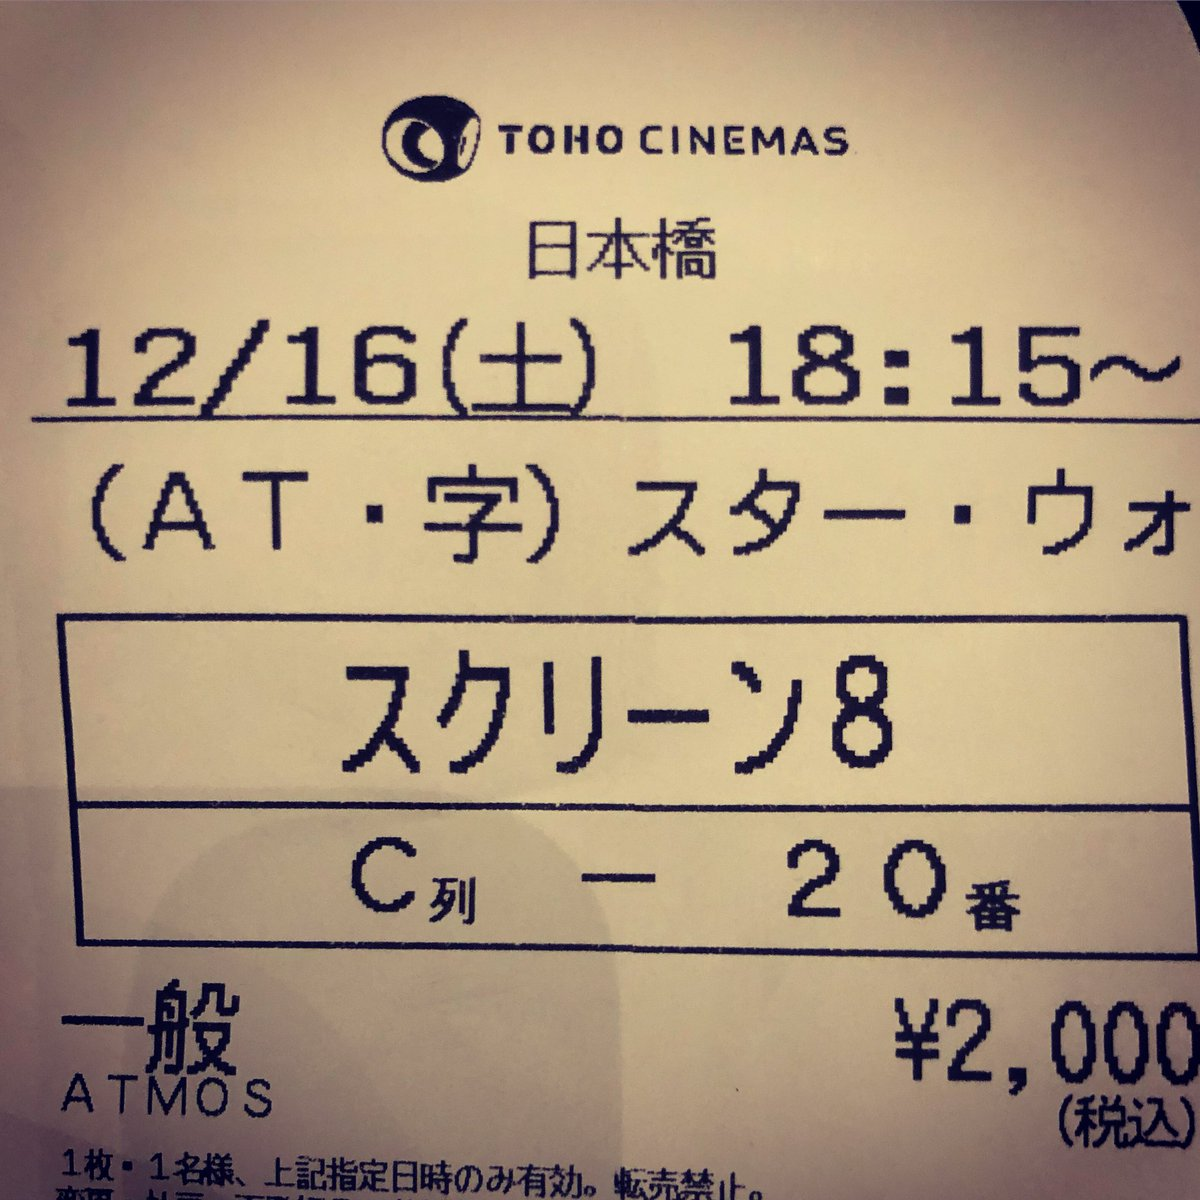 About to see The Last Jedi in Tokyo! If you don't see both of the totally amazing things in that sentence, we have nothing more to say to each other.